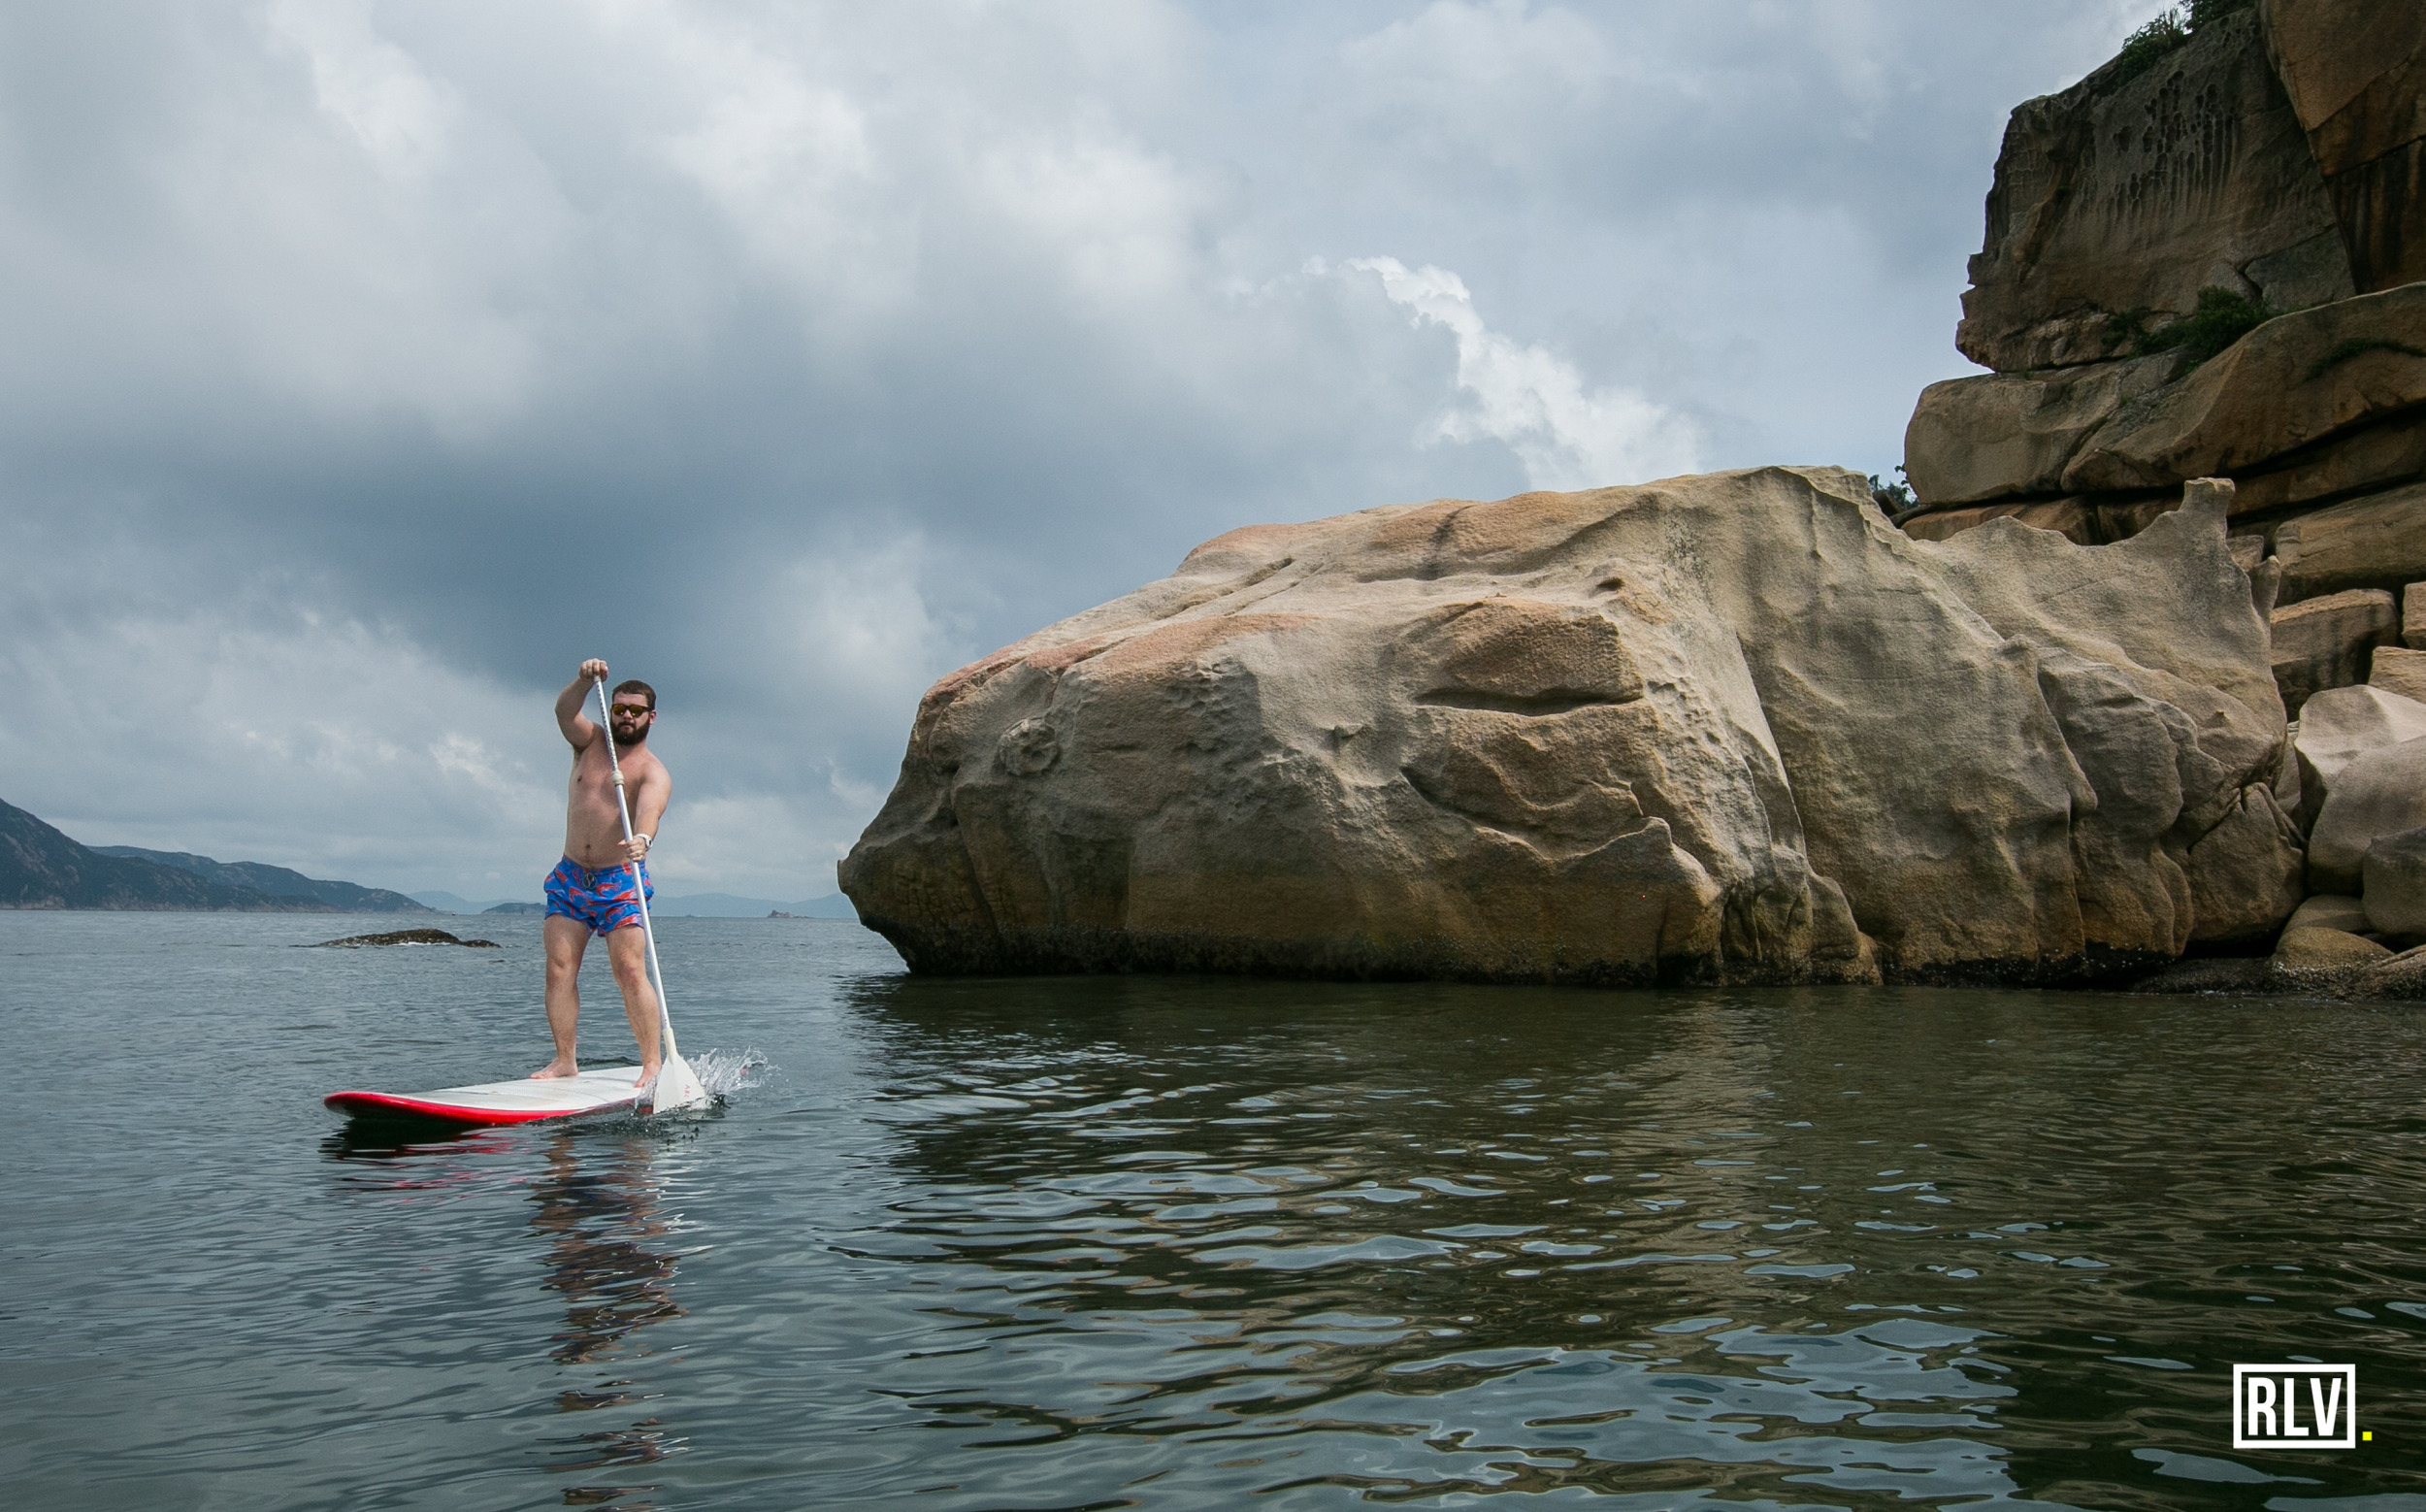 Paddle boarding with Ciaran Danielis. First time and already looking like a pro